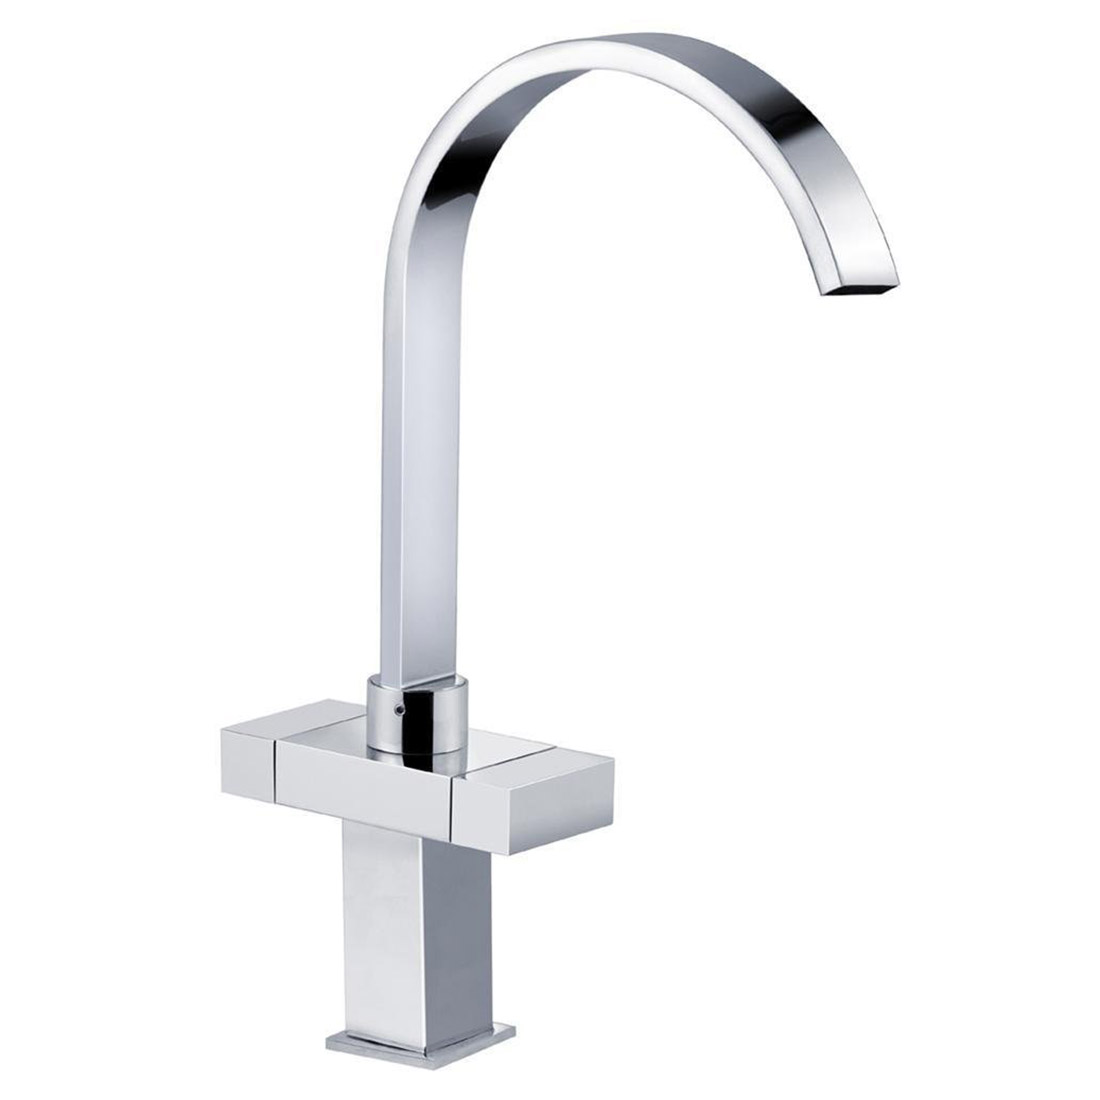 Elegant Design Sink Water Tap 2 Hands Mixer With Double Control Knob for Kitchen Bath Washbasin